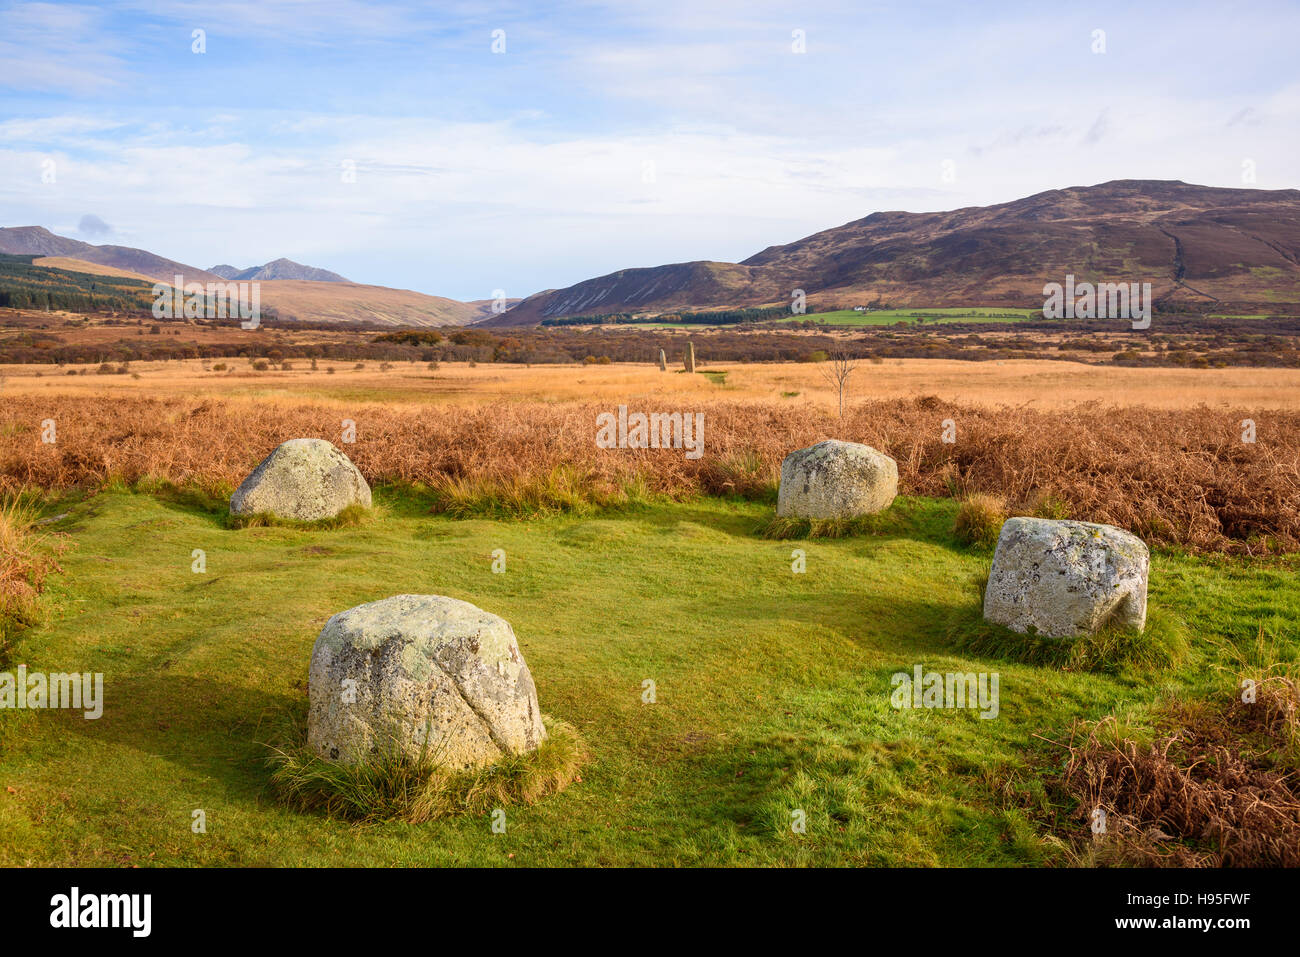 Fourposter, Machrie Moor stone circles, Isle of Arran, North Ayrshire, Scotland - Stock Image